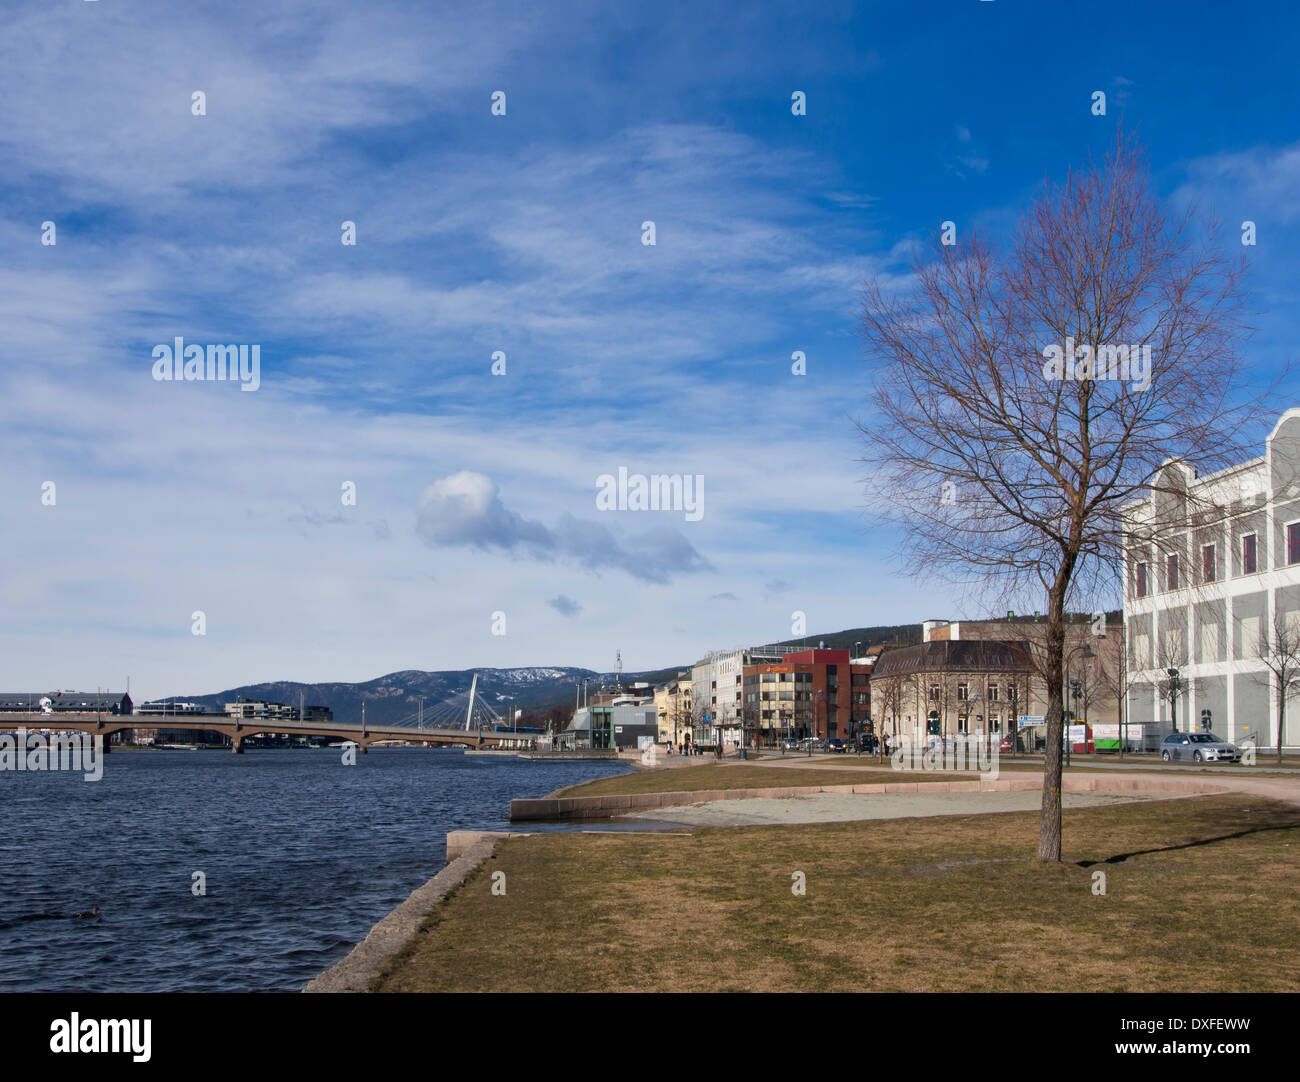 Riverbank with footpaths, beach and decorative installations, modern urban development in Drammen Norway - Stock Image